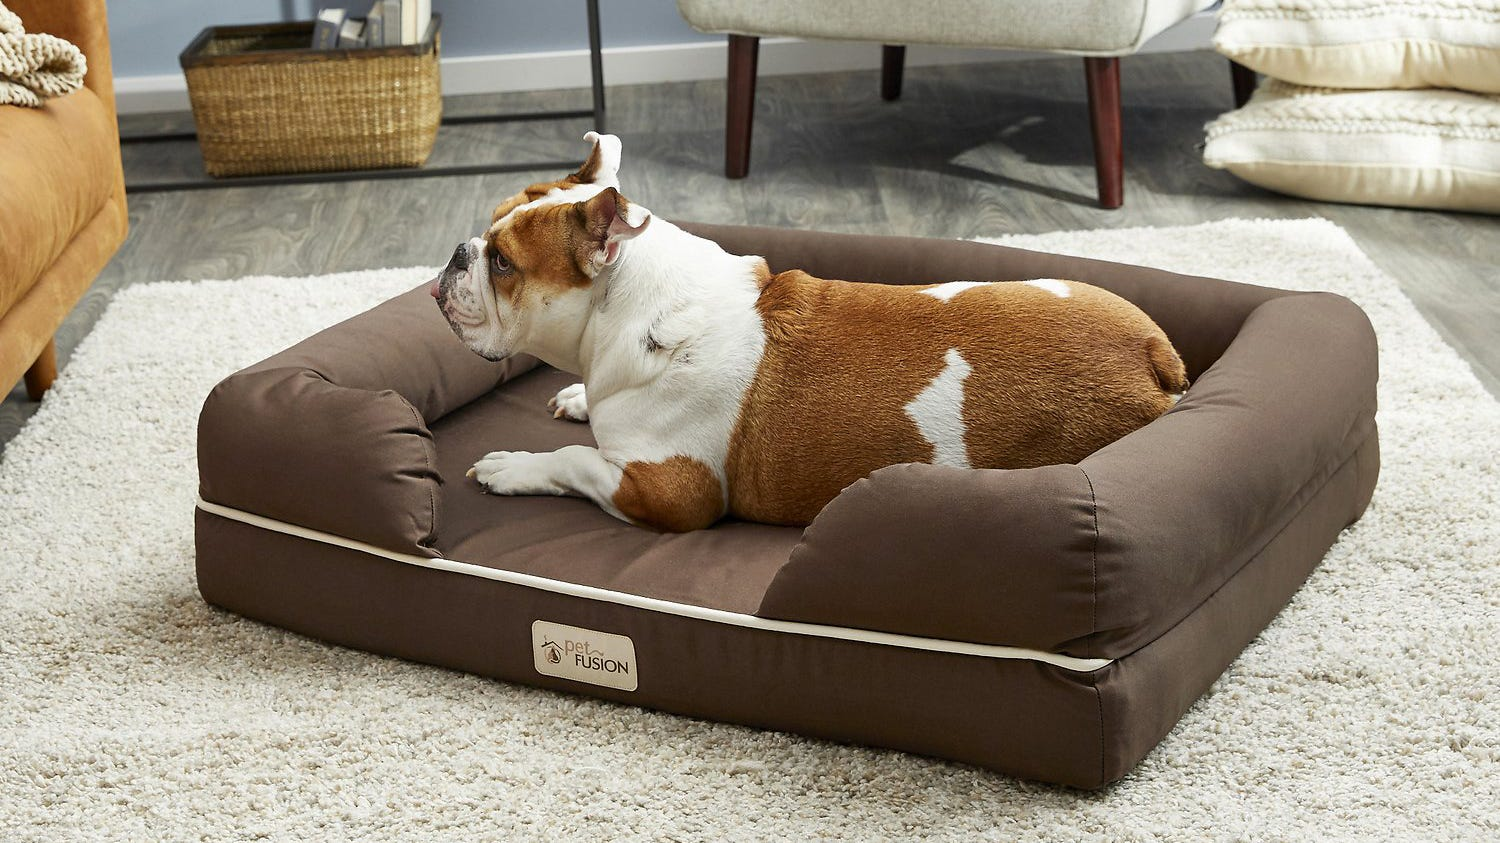 Petfusion Dog Bed Deal Get This Amazing Memory Foam Dog Bed For Its Lowest Price